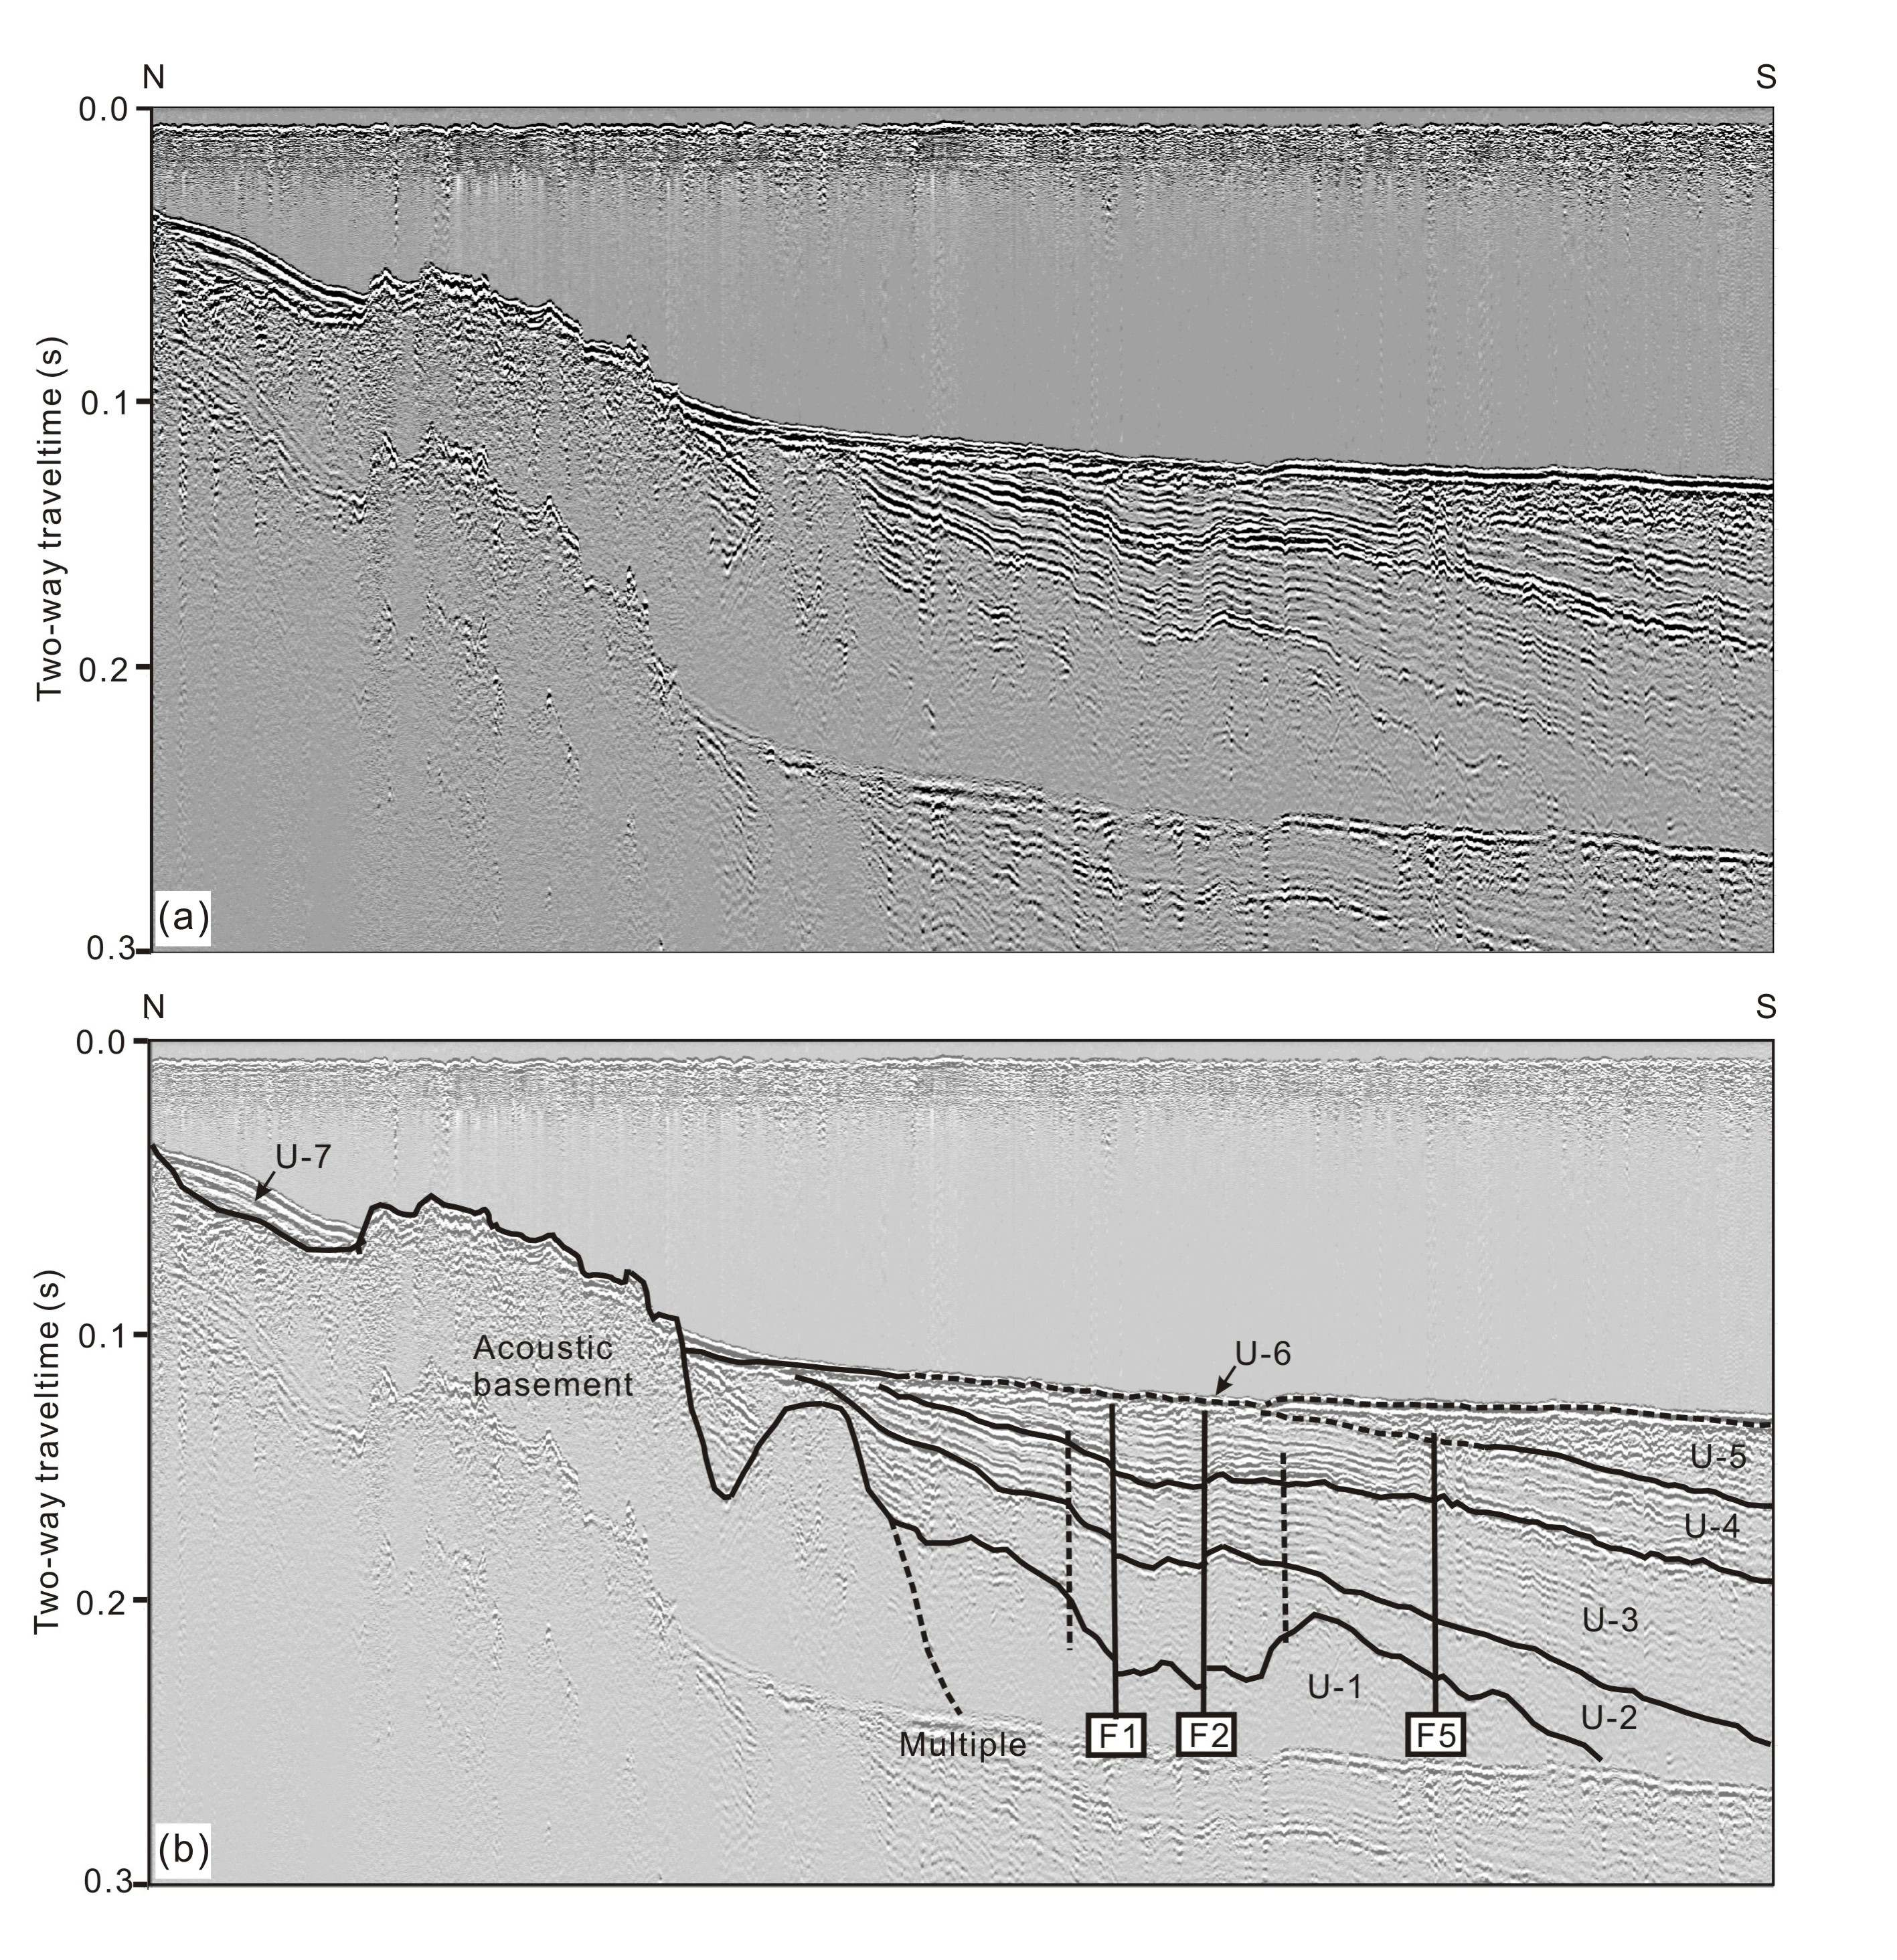 Fig. 3-5. (a) Seismic profile of P-02 and (b) its interpretive line drawings. See Fig. 3-4 for location.